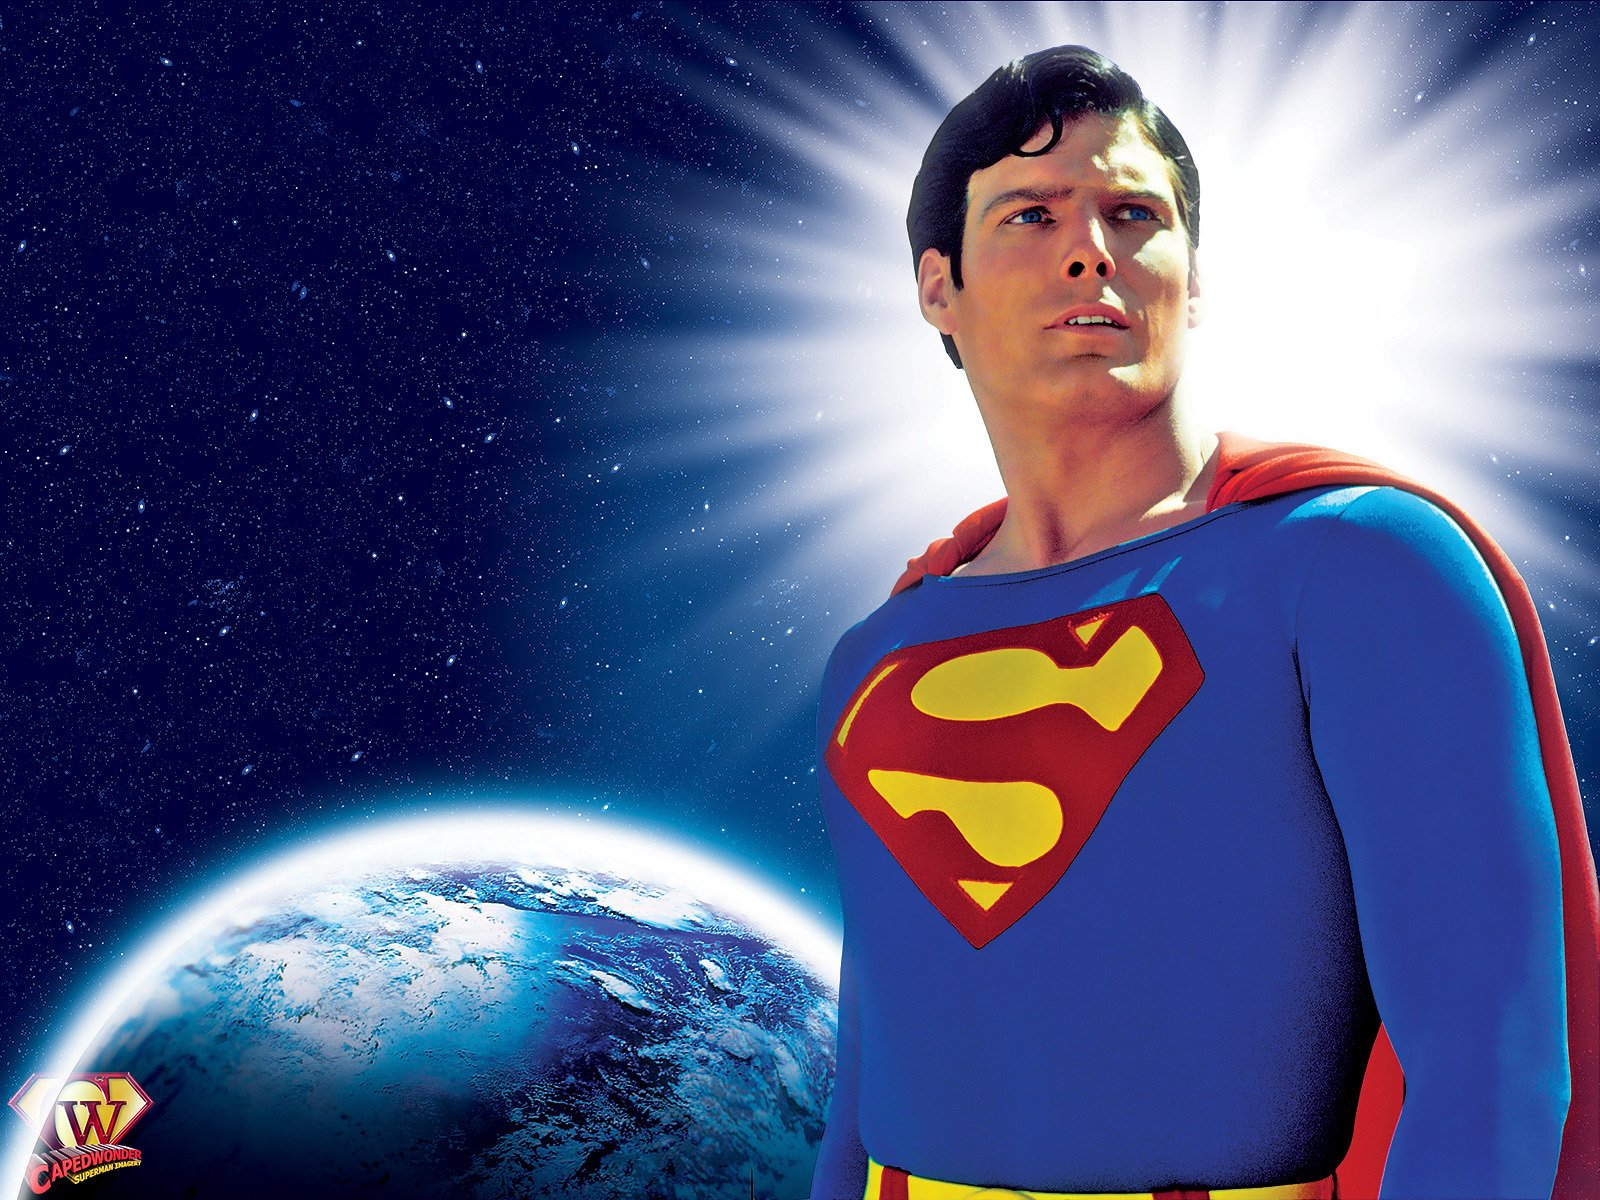 Superman   Superman The Movie Wallpaper 20439322 1600x1200